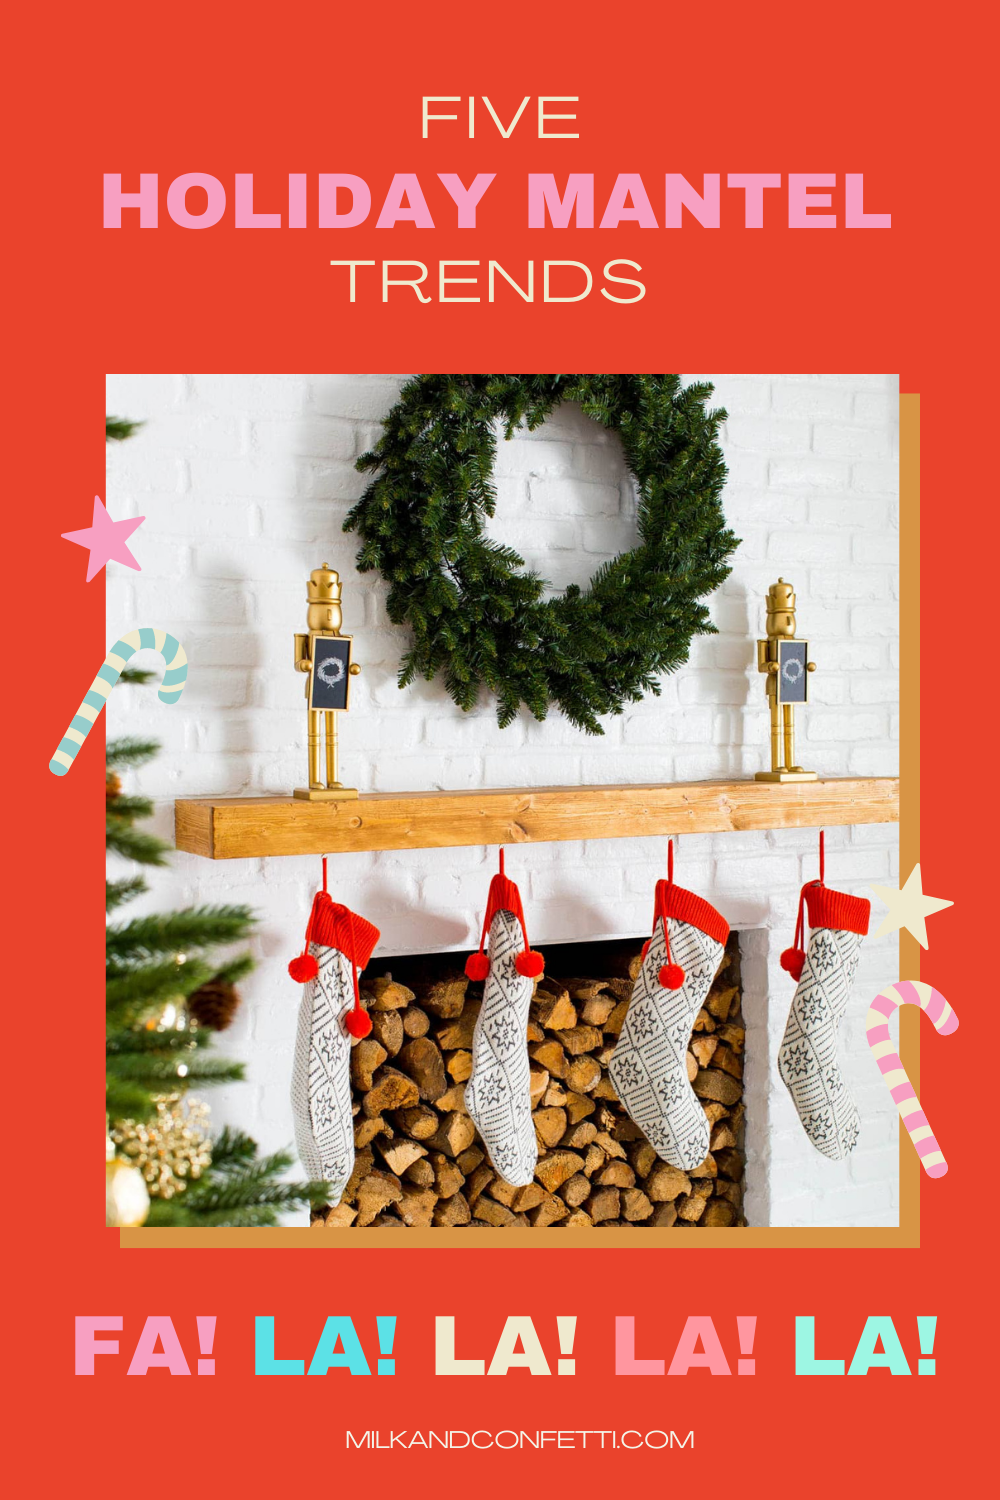 A white Christmas holiday fireplace with a mantel decorated with a green wreath, nutcrackers and stockings for a stylish and cozy feel.